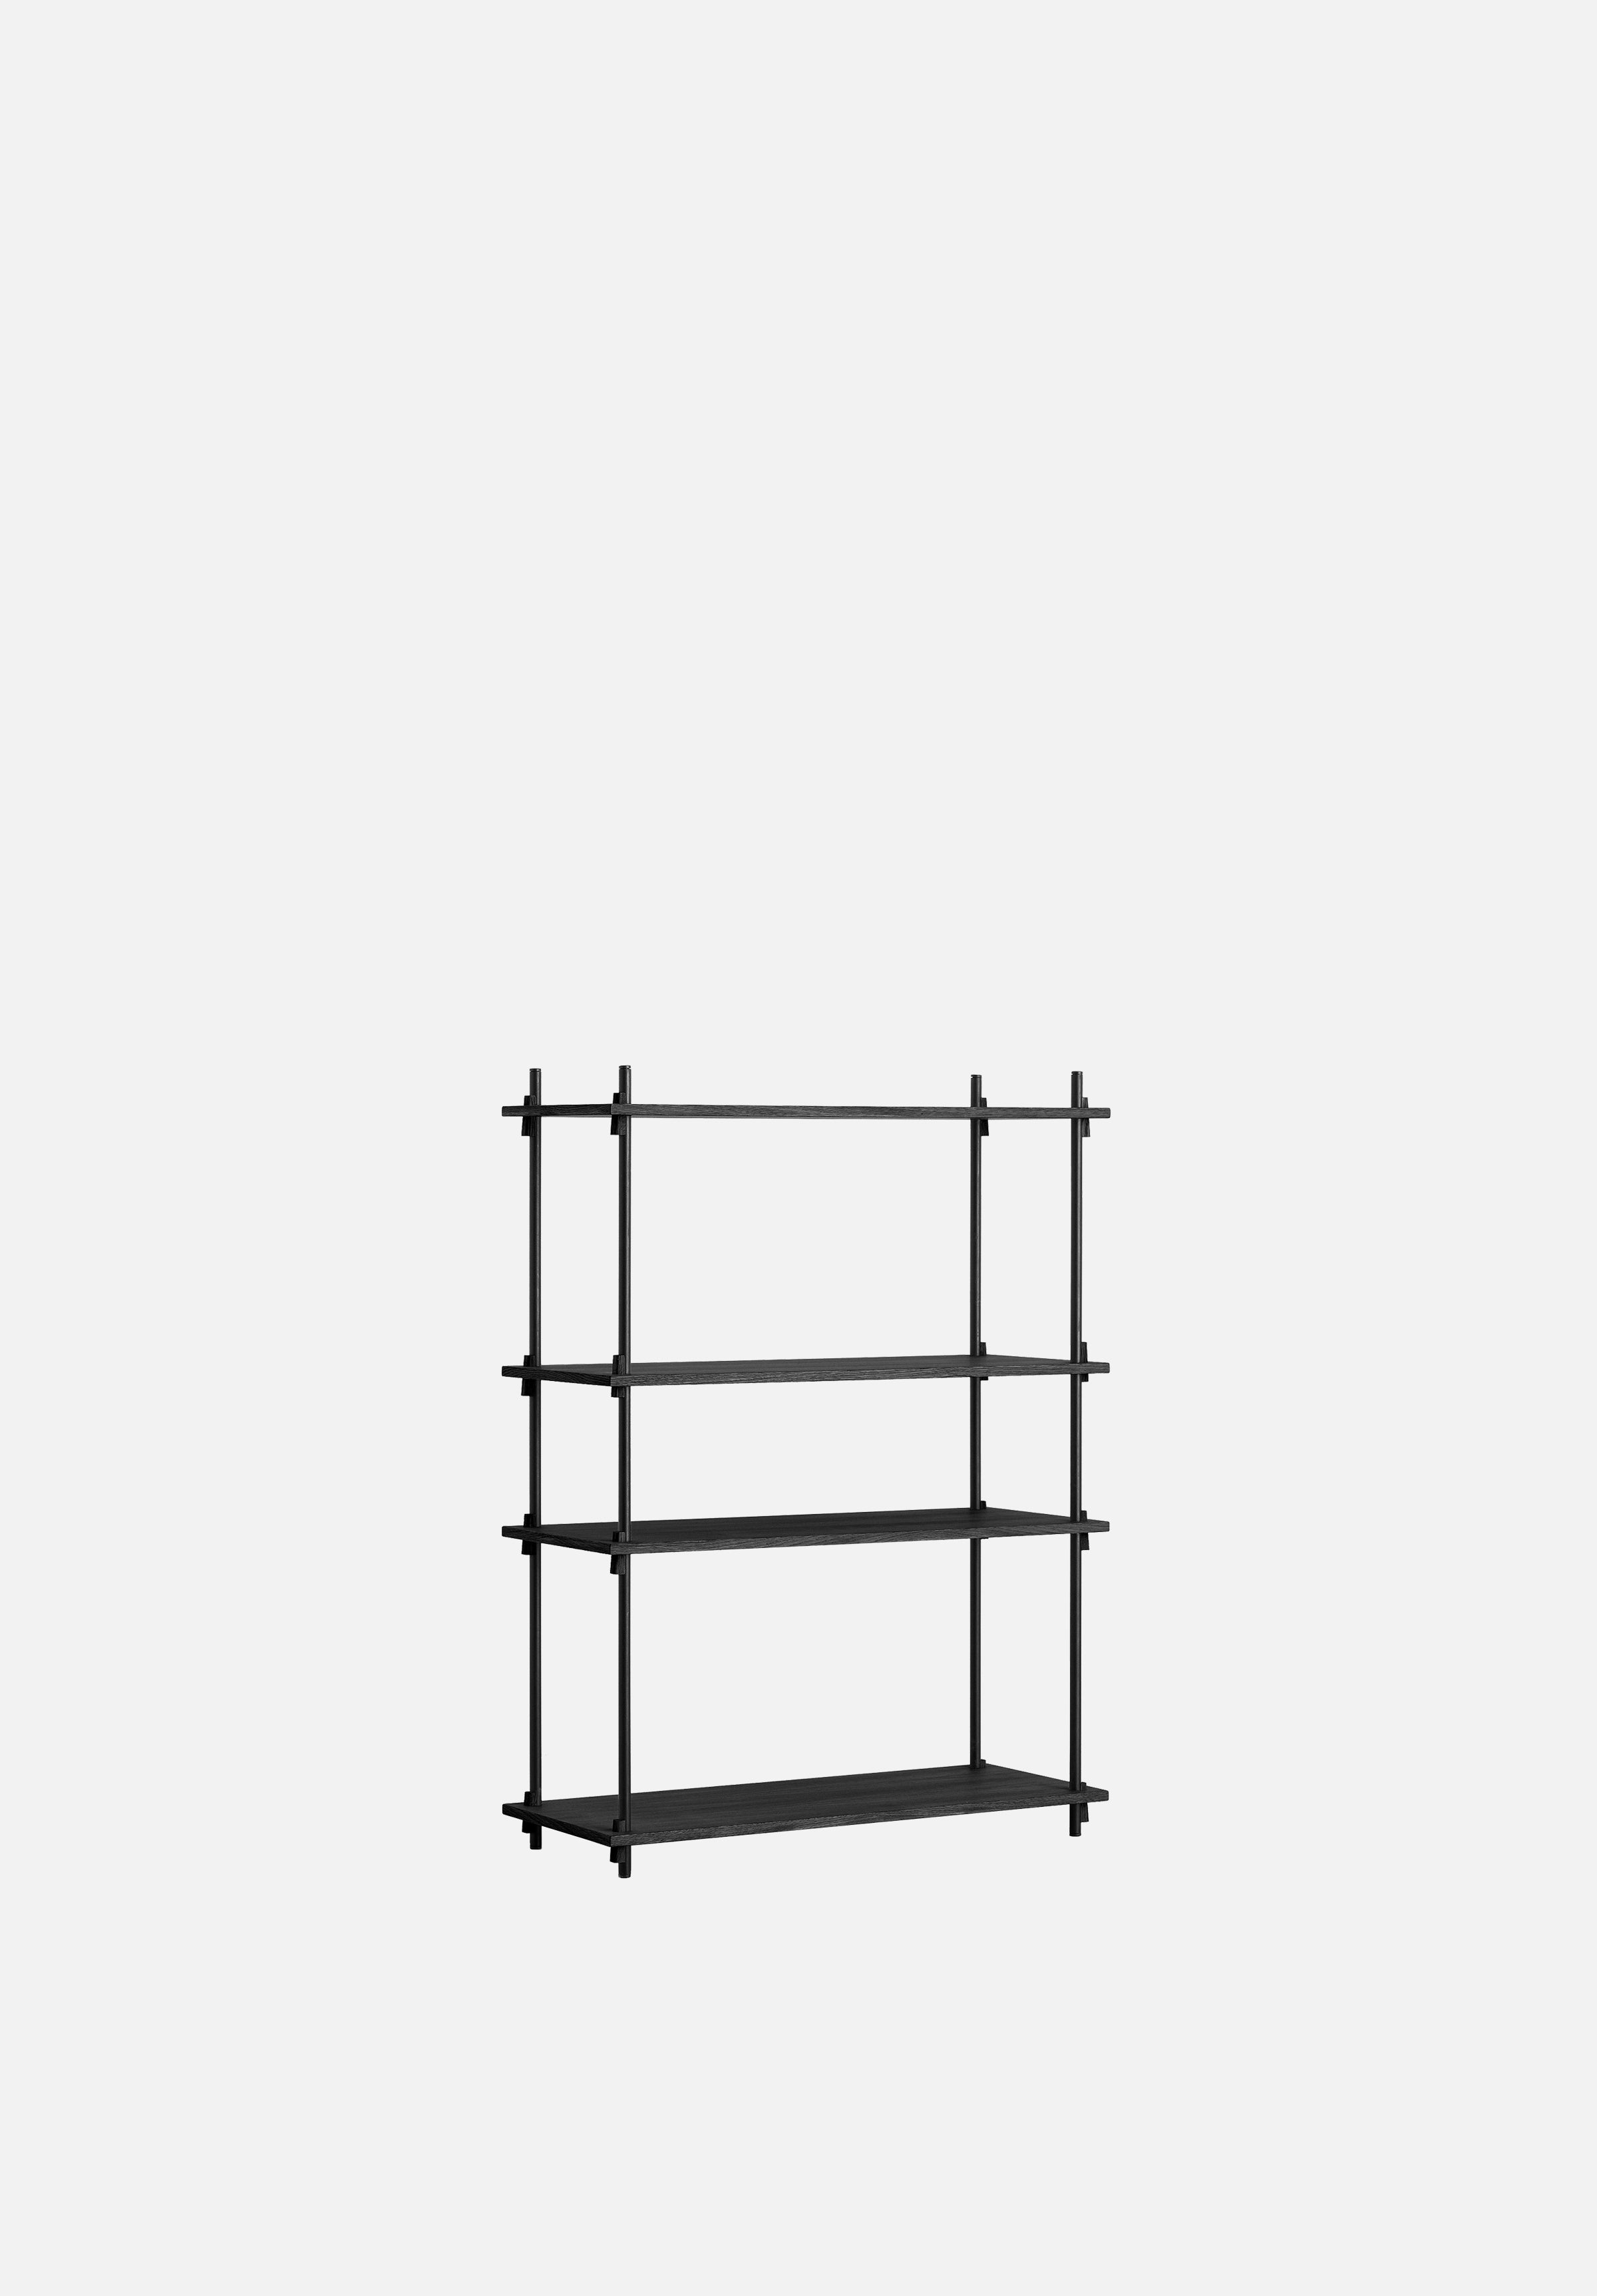 Shelving System — Medium-Moebe-Single Bay-Black-danish-interior-furniture-denmark-Average-design-toronto-canada